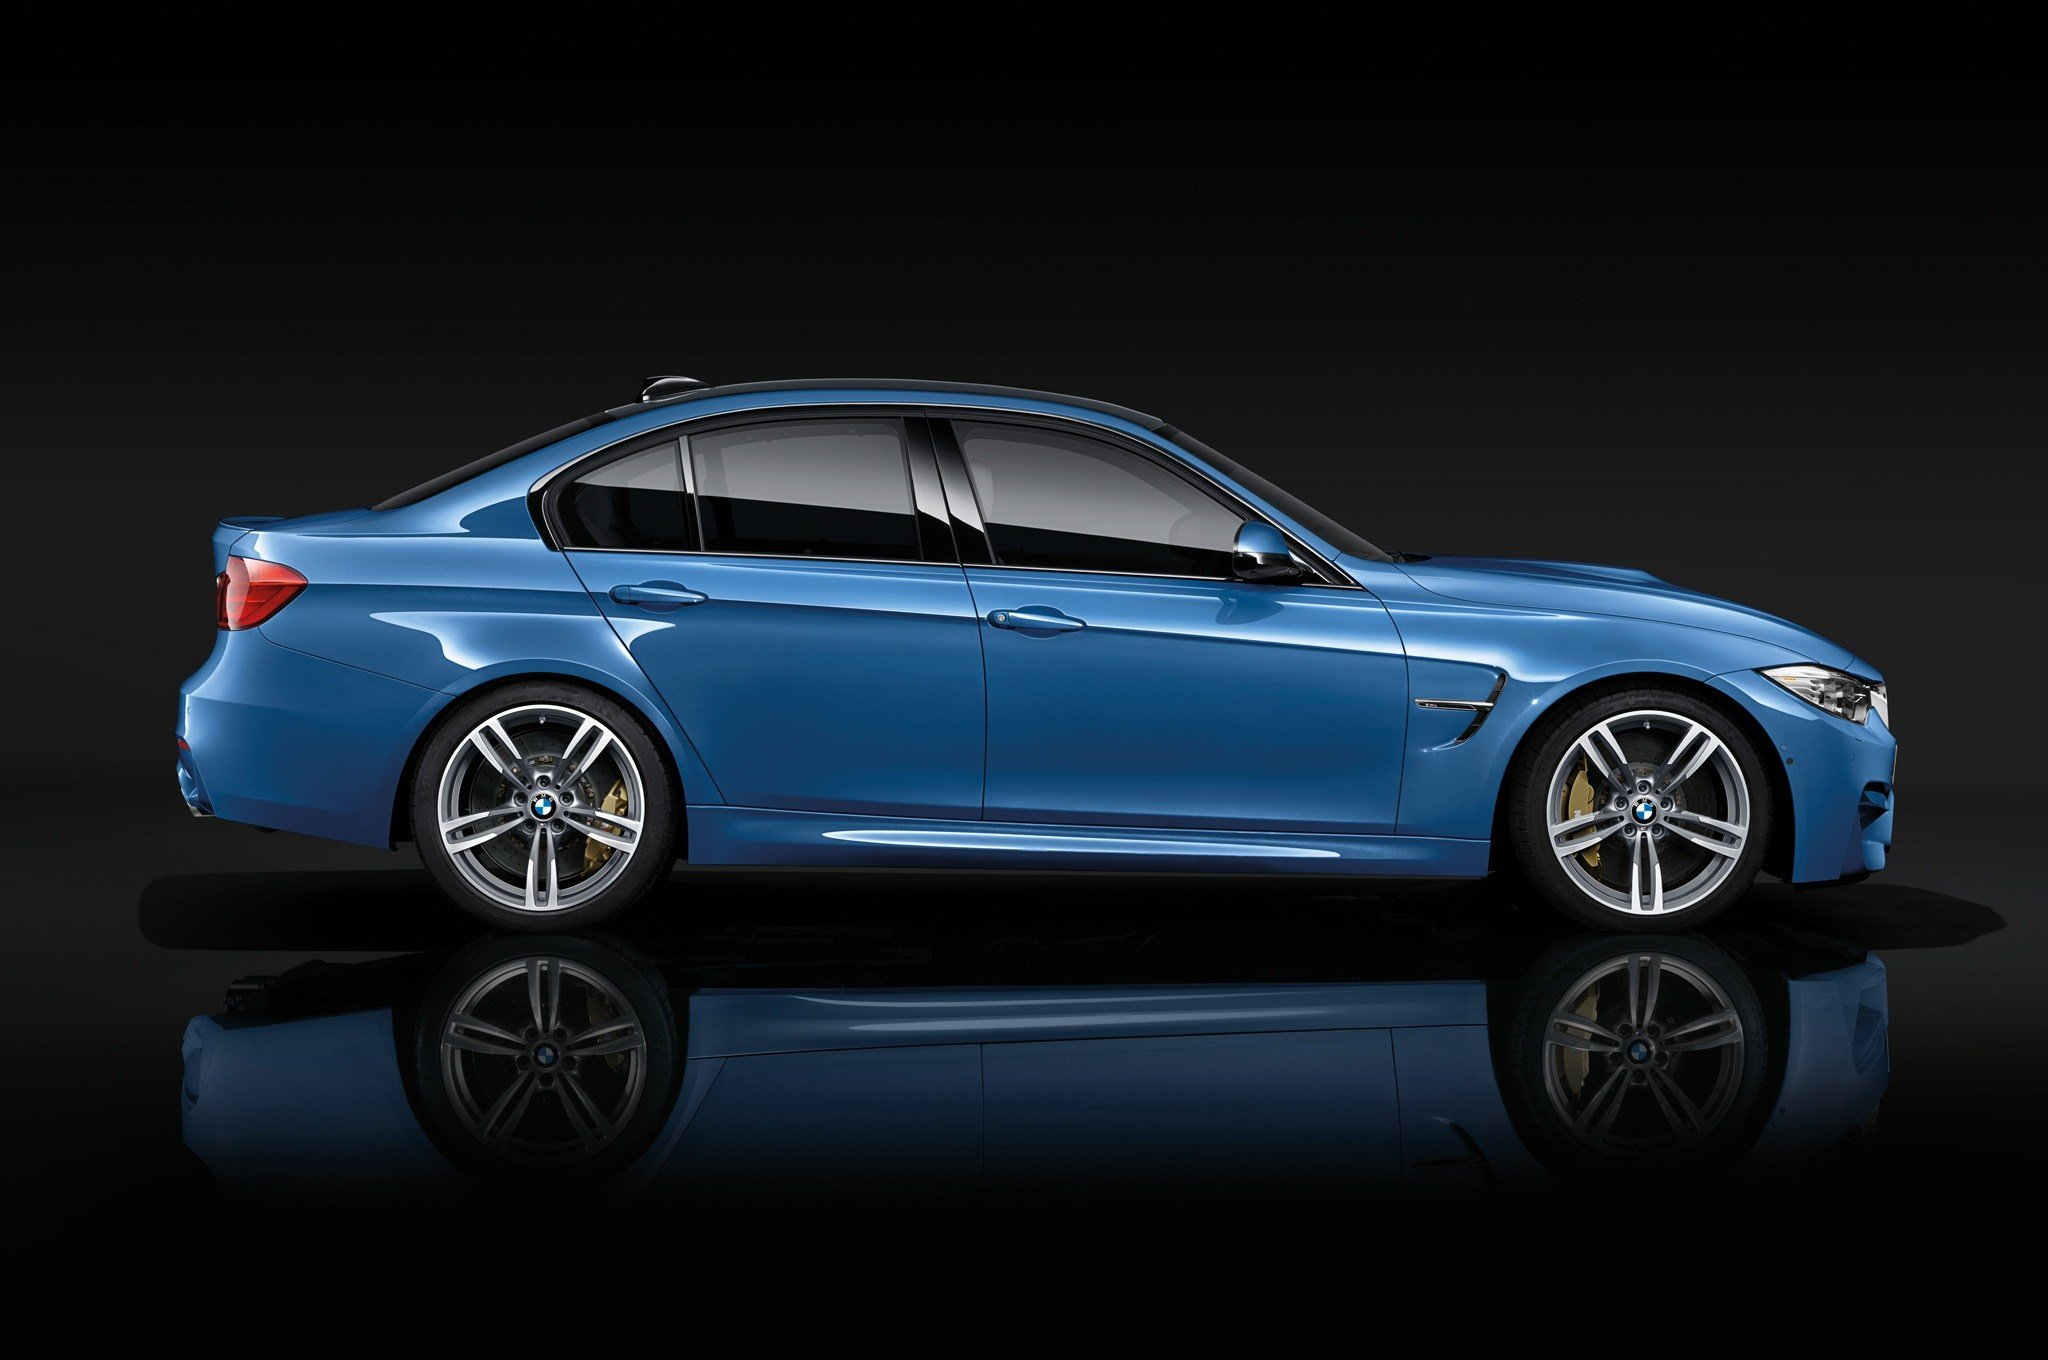 Latest 2015 Bmw M3 Cars Exclusive Videos And Photos Updates Free Download